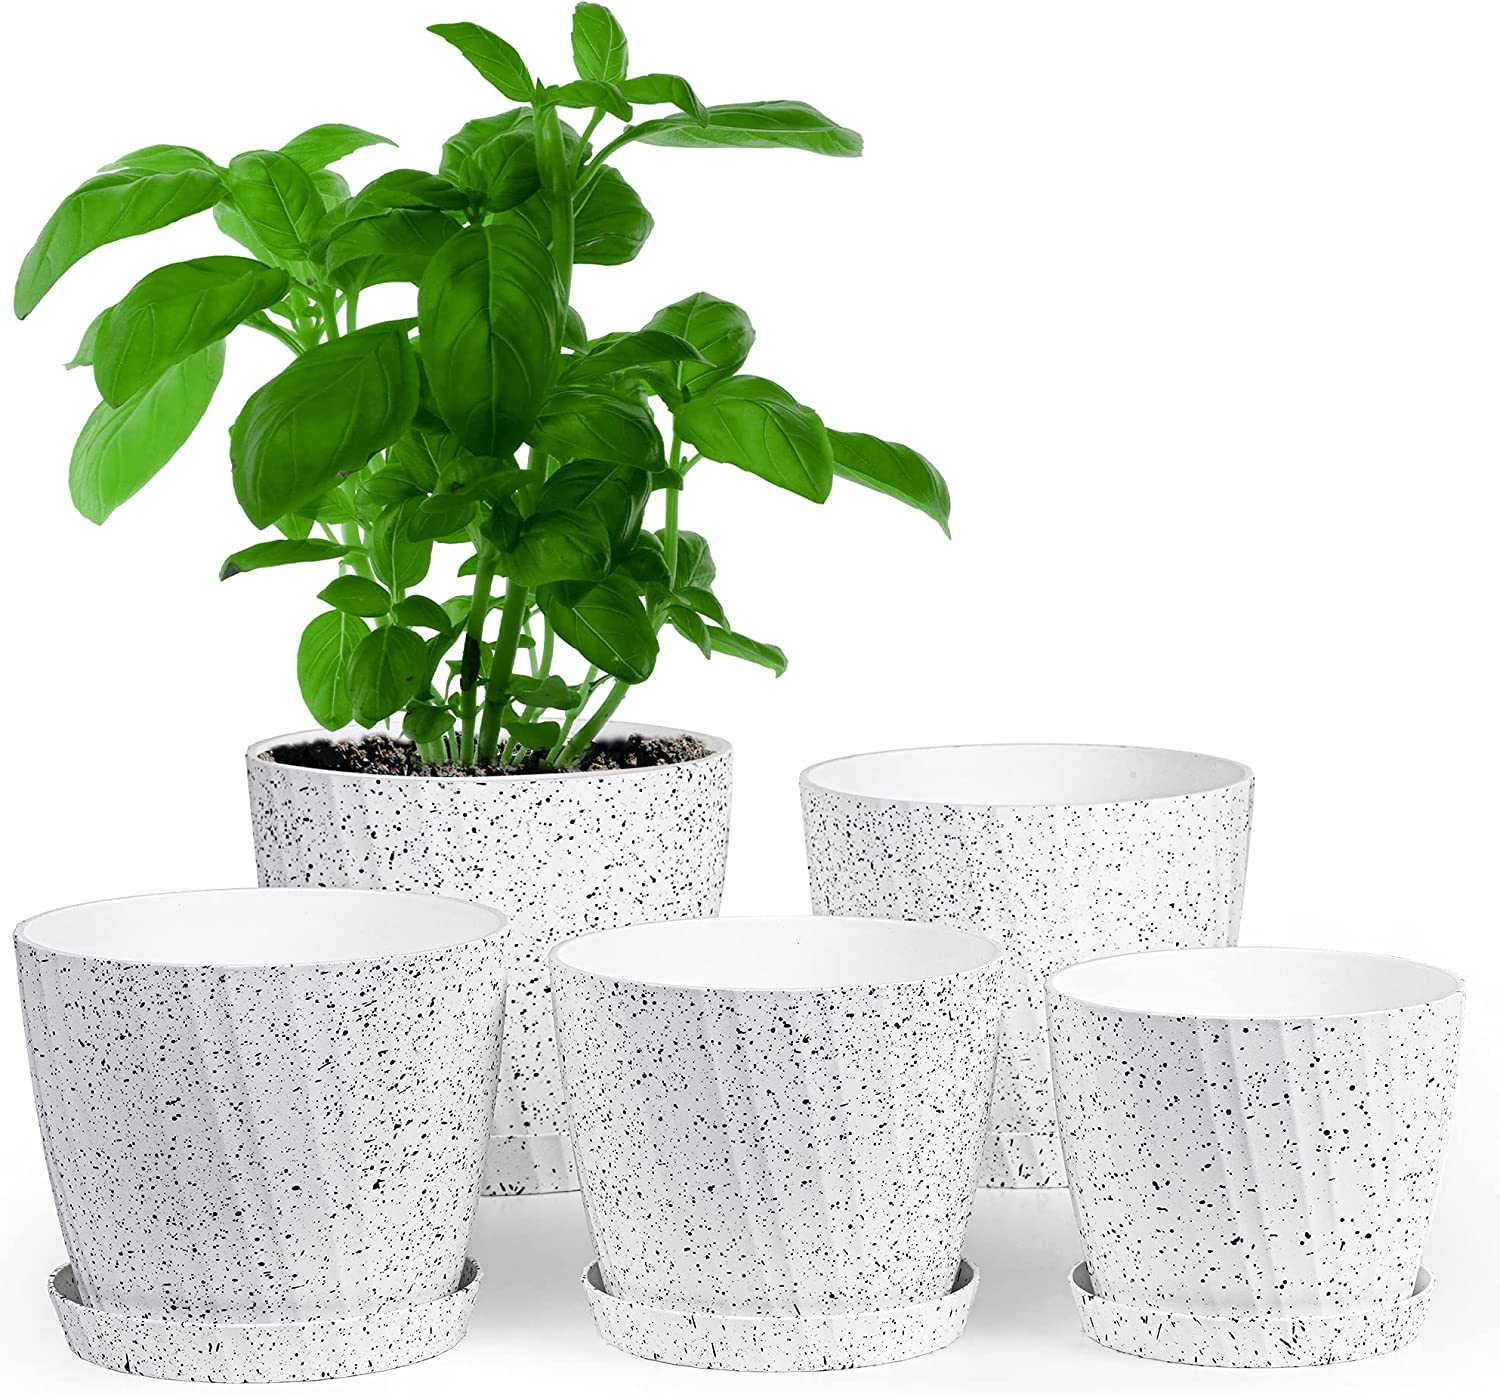 SMARTAKE 5 Pack Plastic Planters, 5.4/6/6.4/6.9/7.4 Inch Flower Plant Pots, Nursery Garden Balcony Pots with Drainage Holes and Tray, for Indoor, Outdoor, Office, Succulents, Cactus (White with Spots)